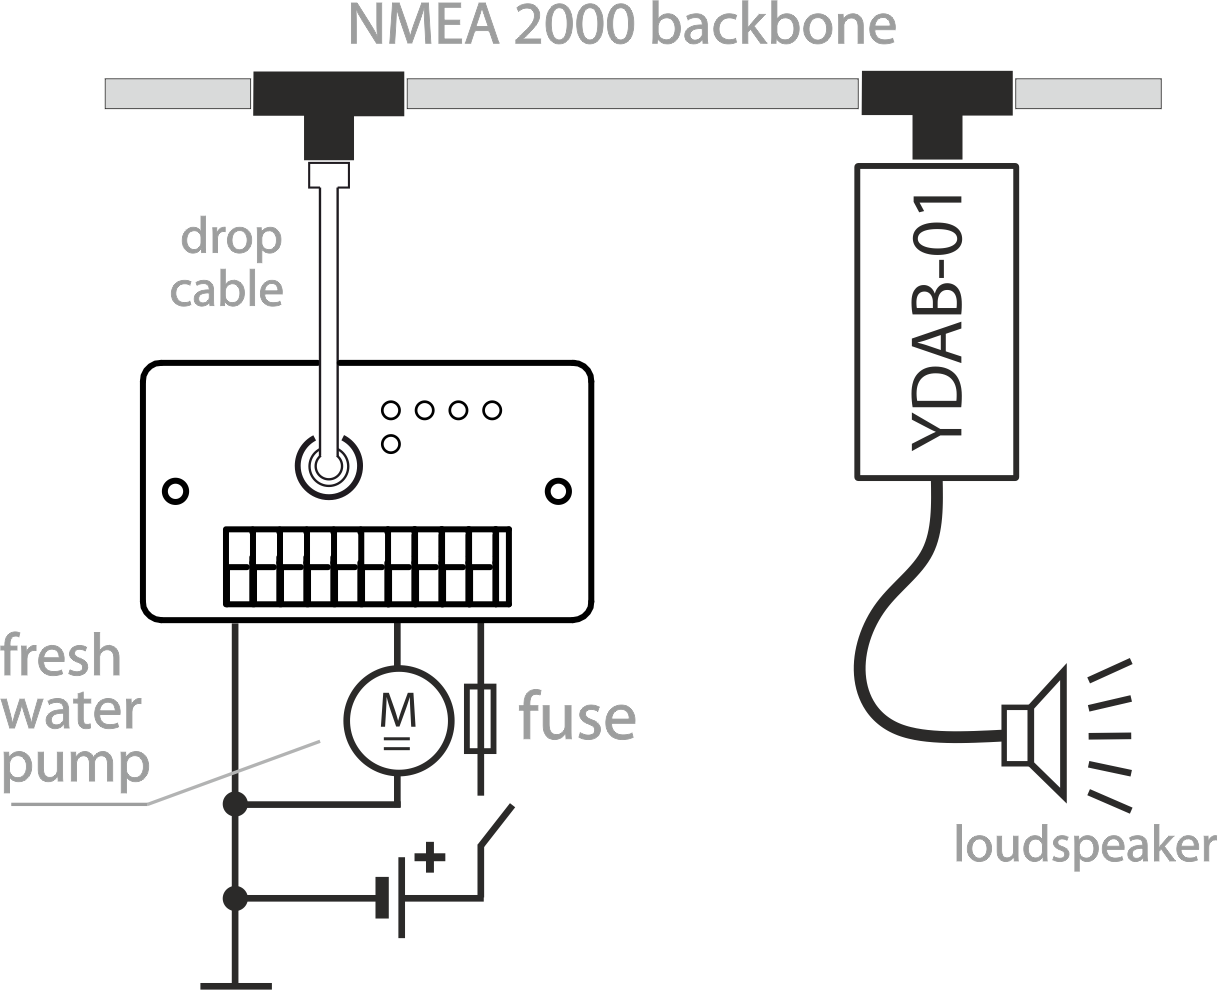 Basic alarm system (Run Indicator and Alarm Button)